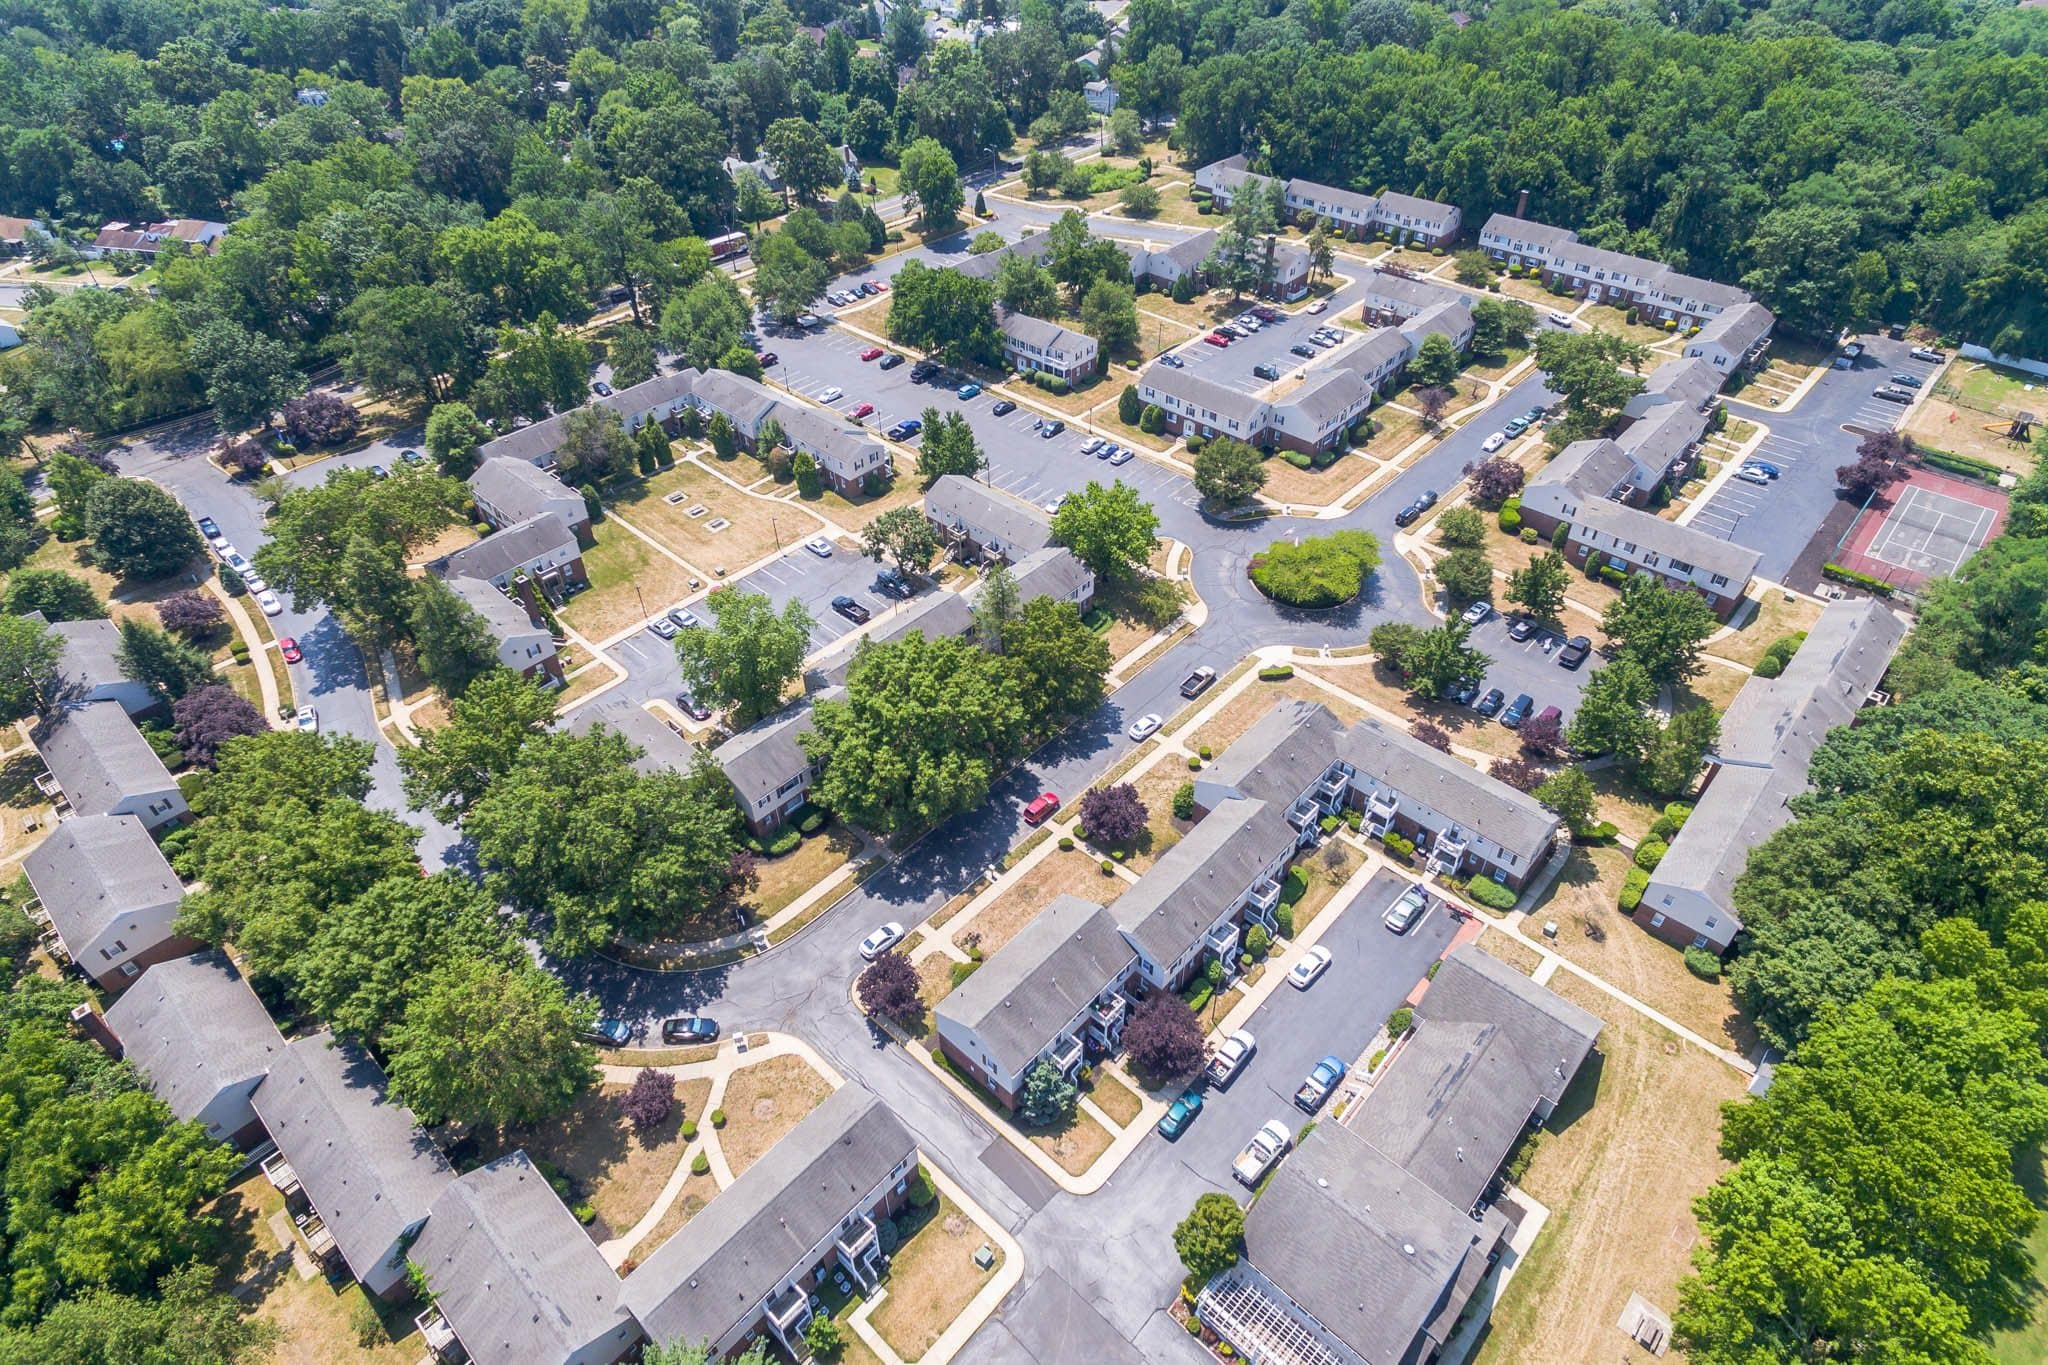 Aerial View of Village Square Apartments in Mount Holly, NJ